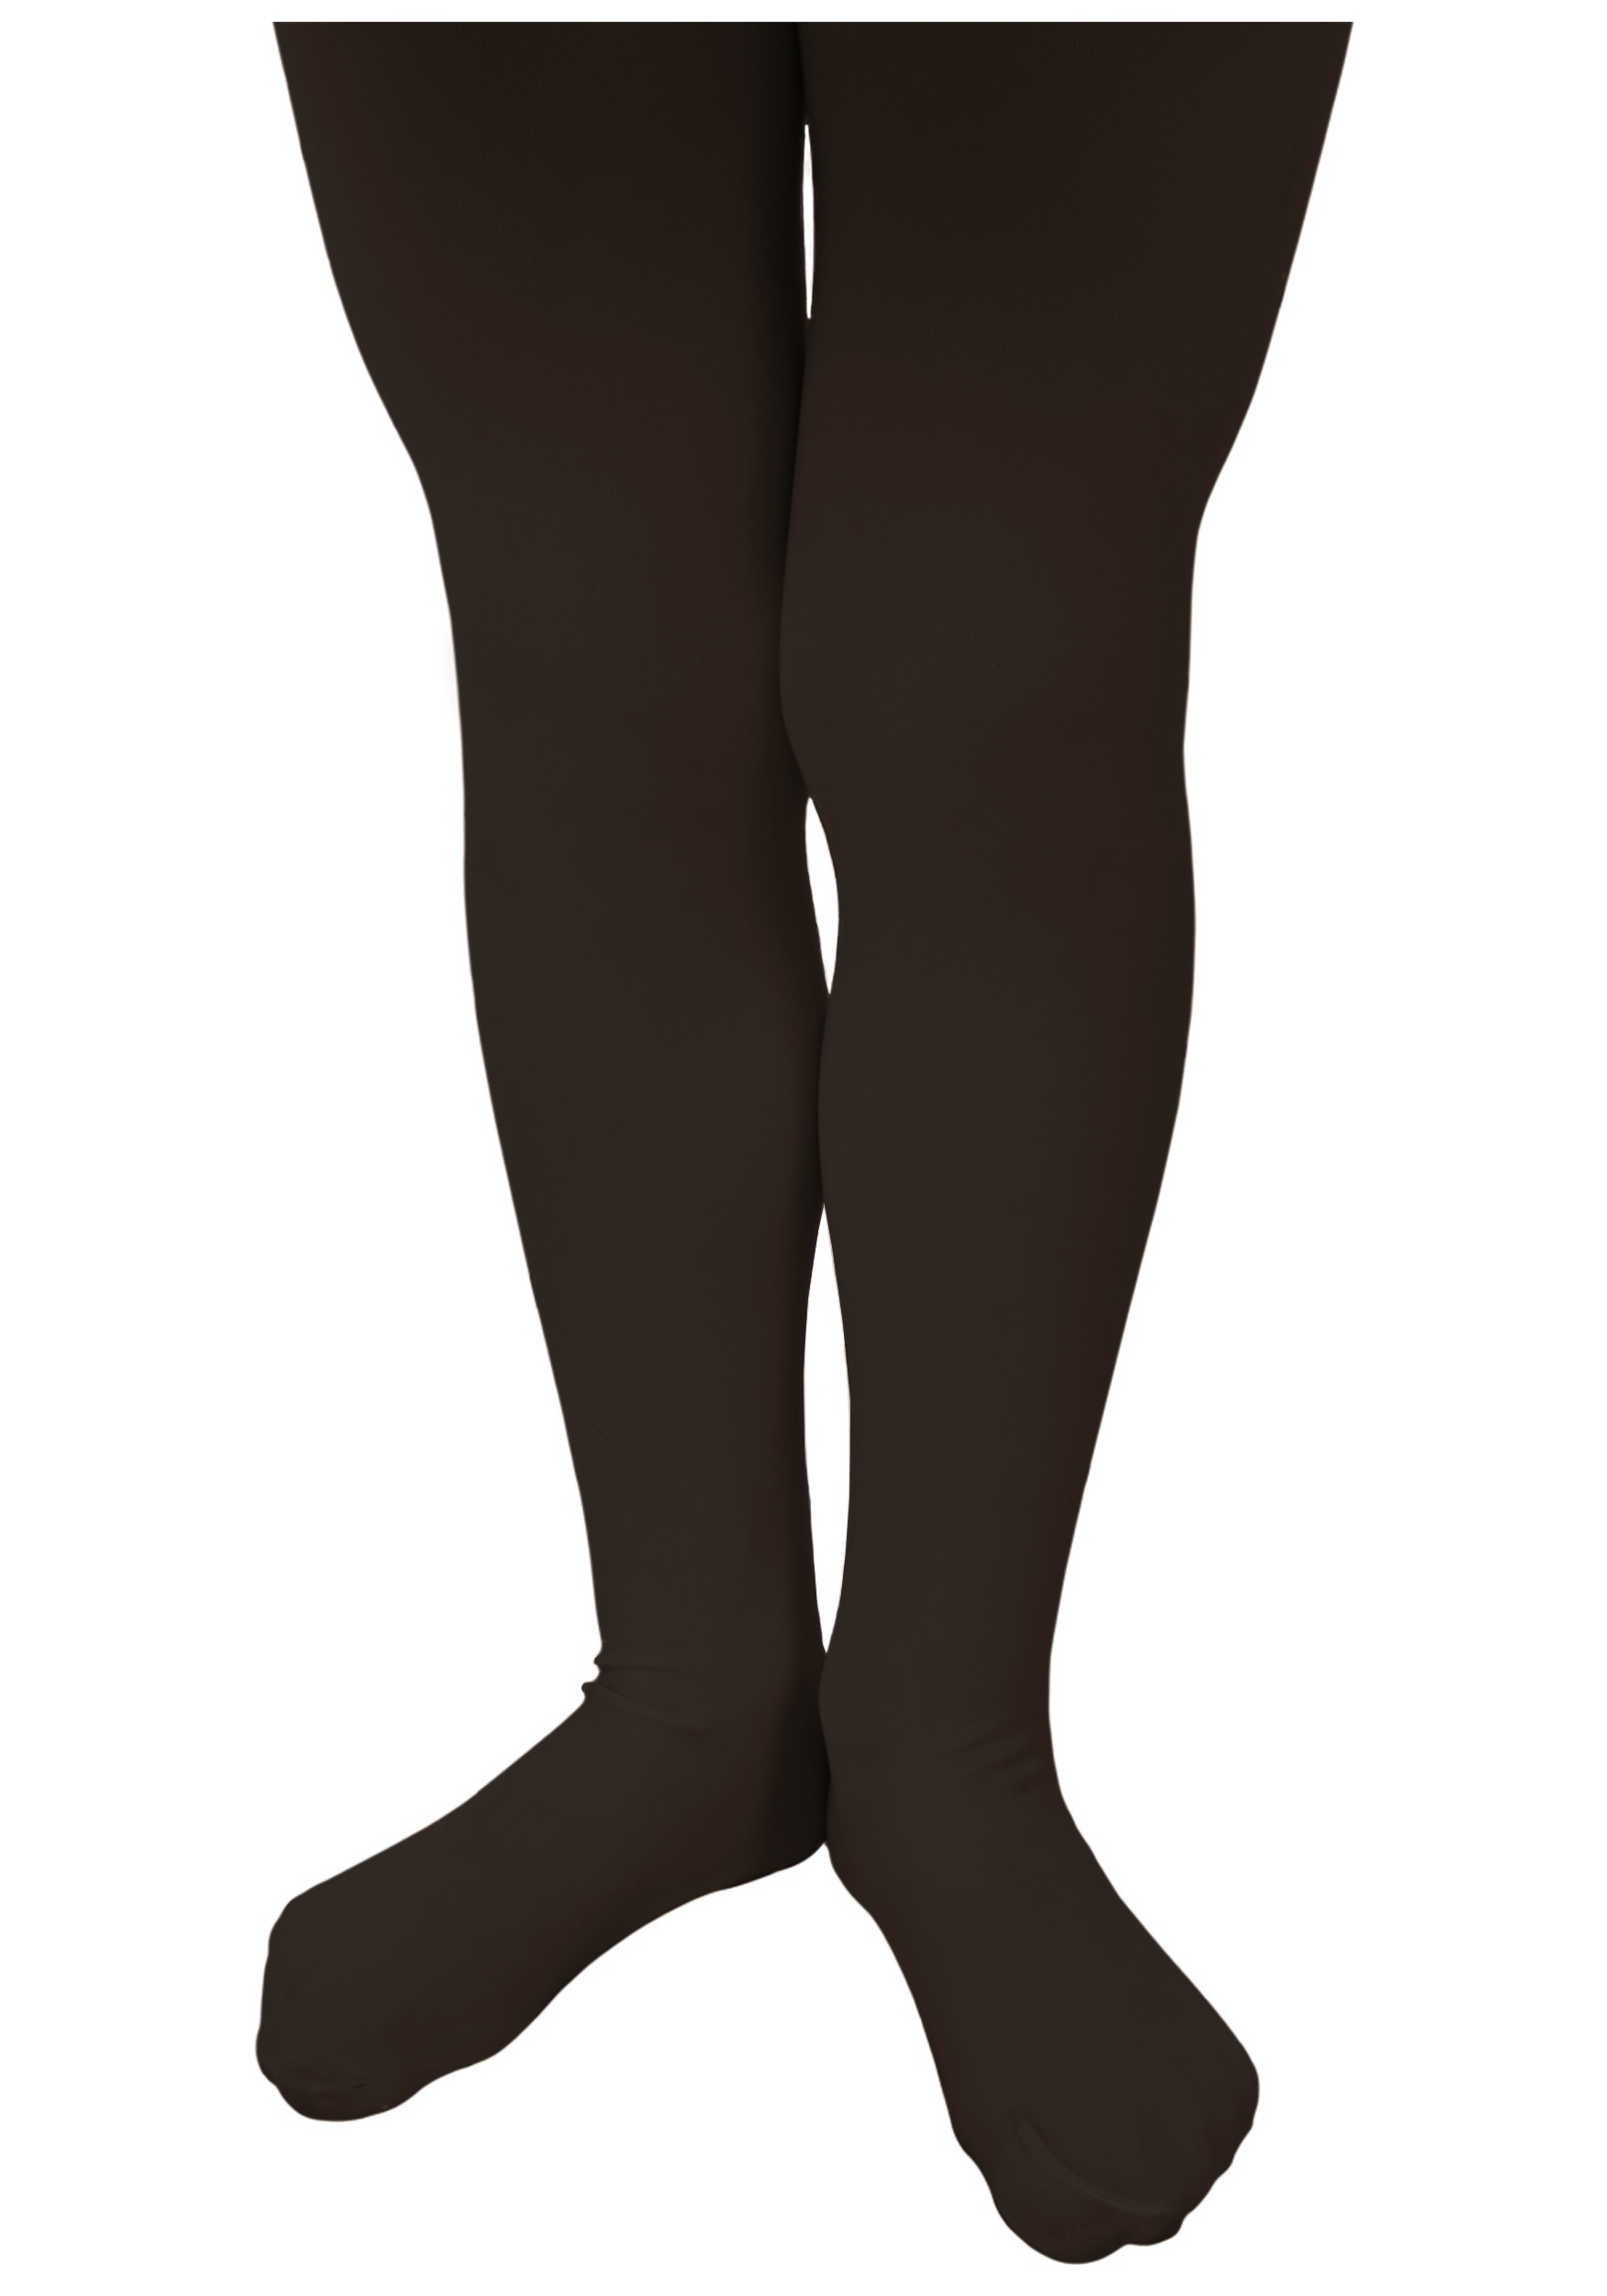 Girl tights clipart.